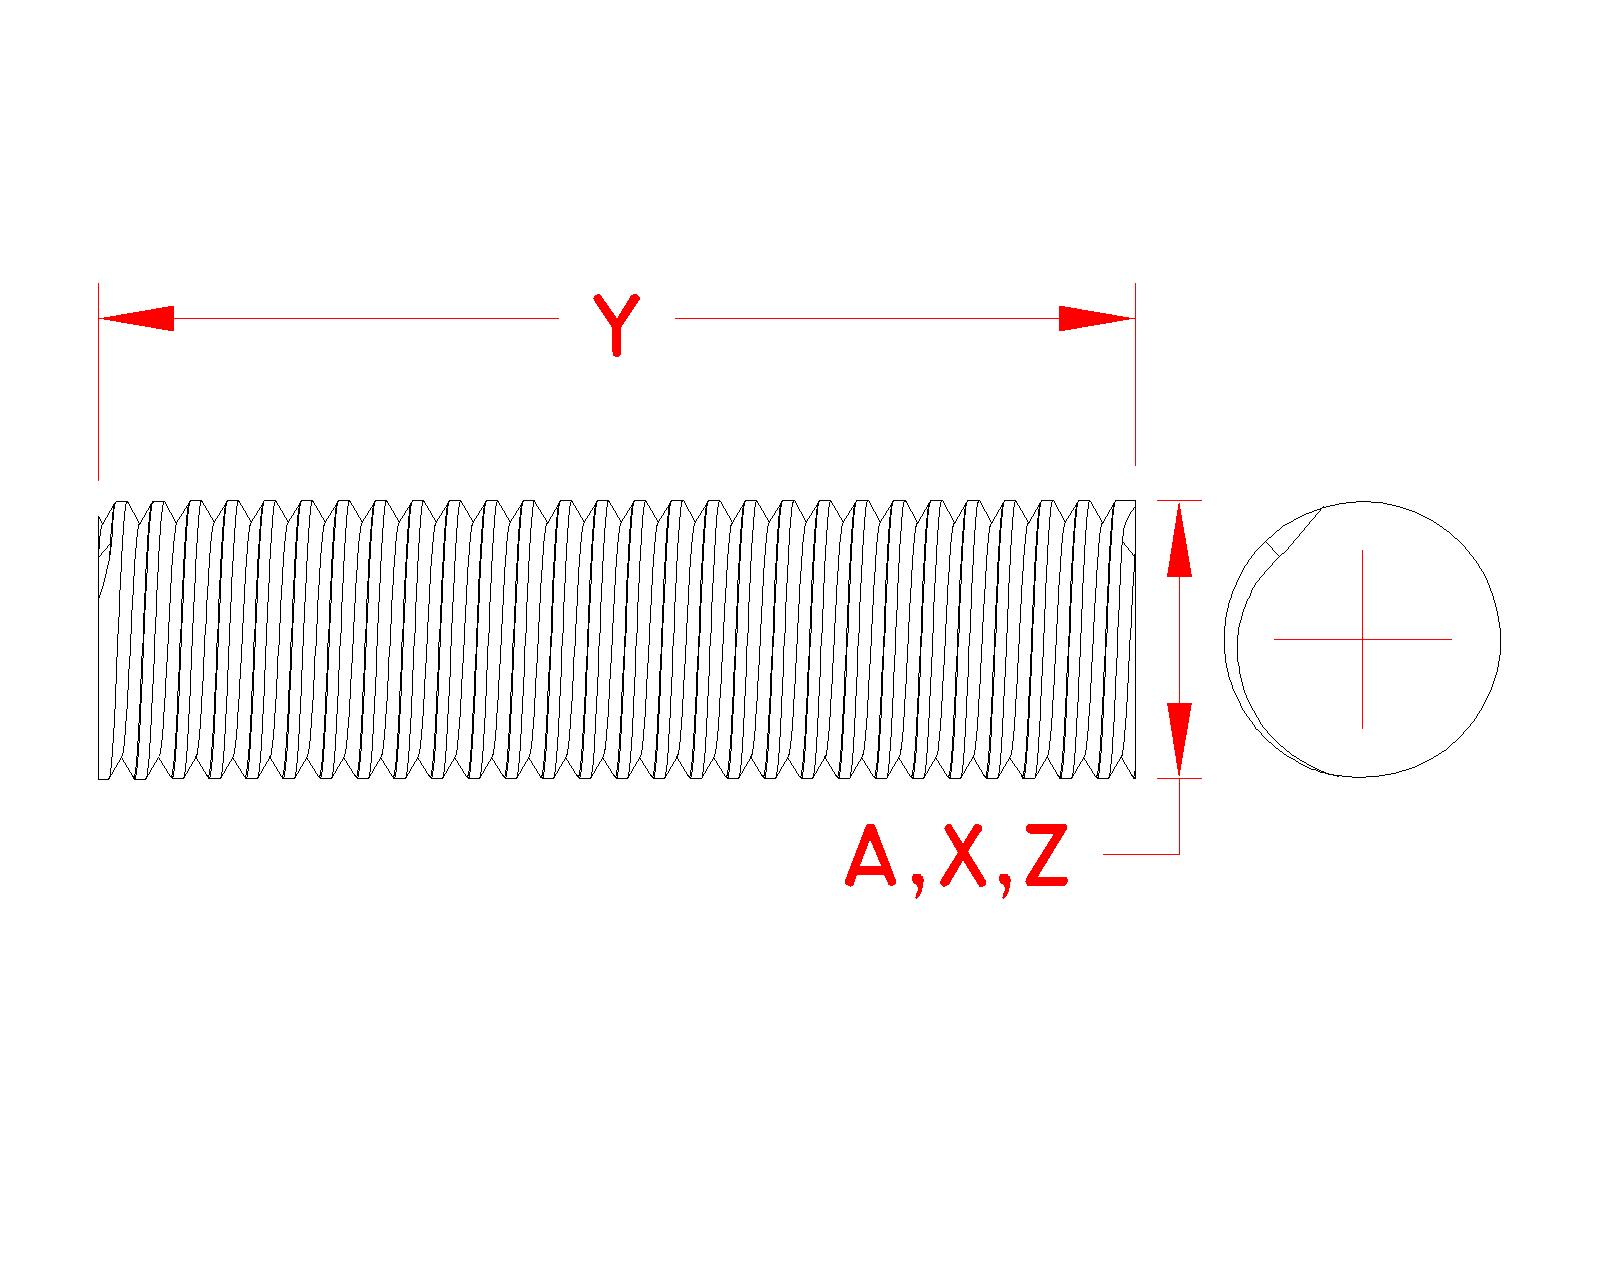 Stainless Steel Threaded Rod, S0300-0, Line Drawing